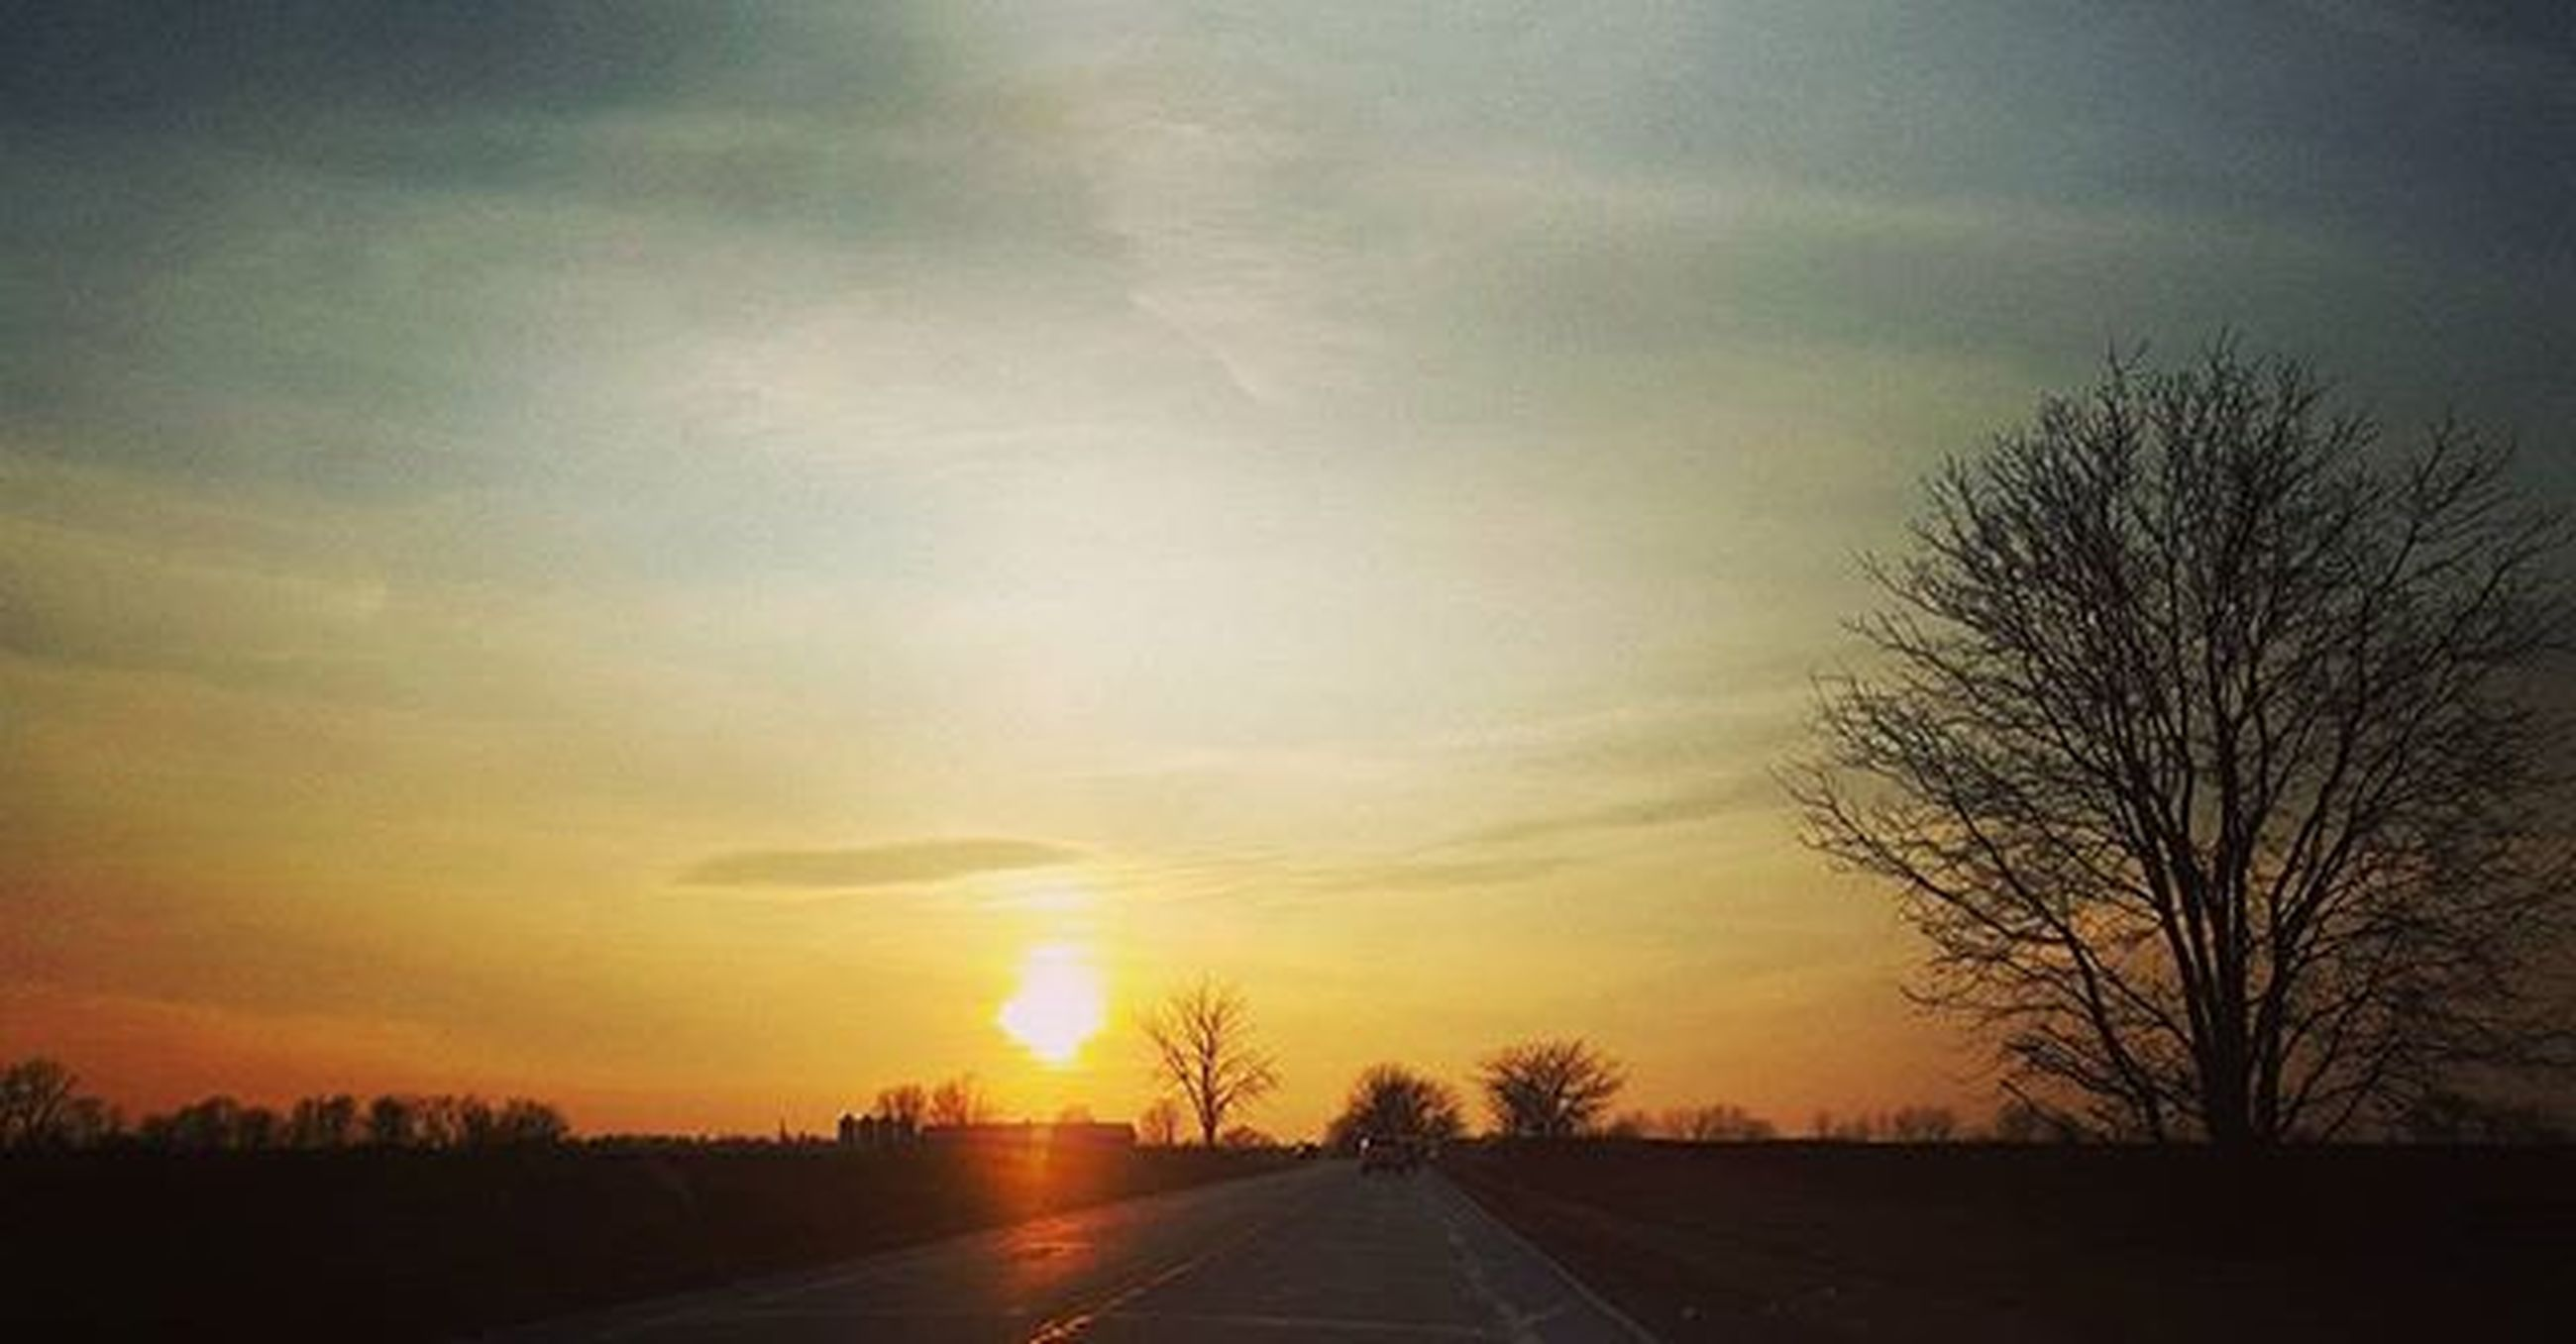 sunset, the way forward, transportation, sky, road, orange color, silhouette, tree, diminishing perspective, tranquility, sun, tranquil scene, vanishing point, scenics, cloud - sky, beauty in nature, landscape, nature, bare tree, country road